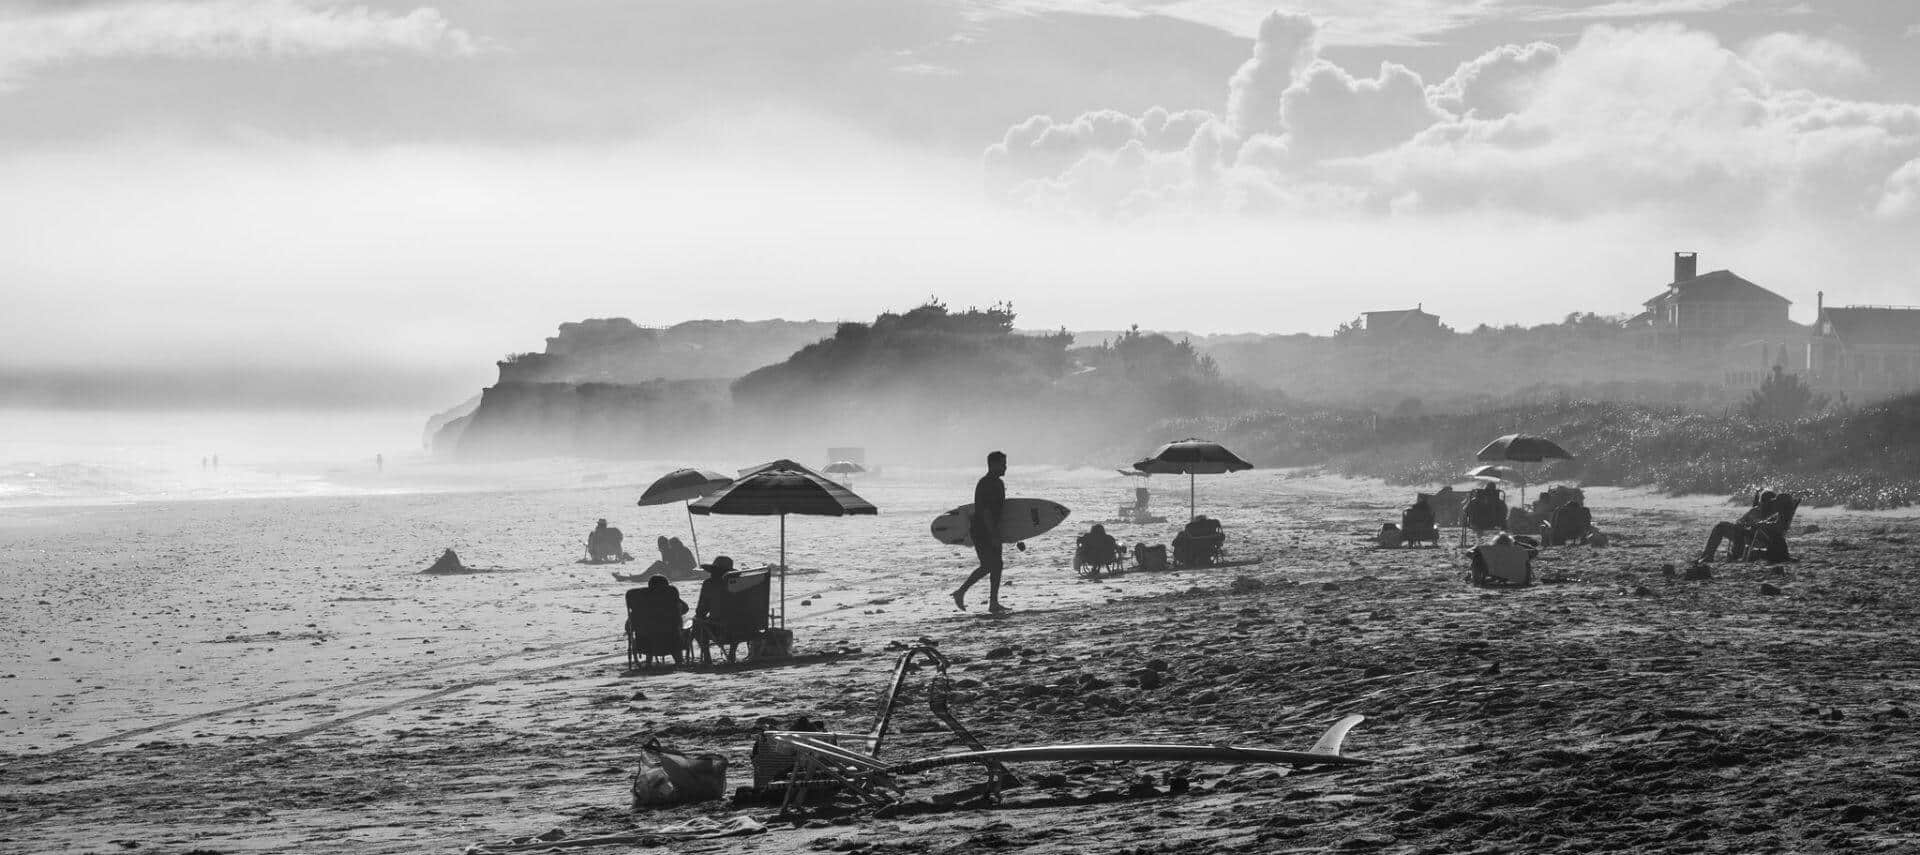 Black and white of people on beach sunbathing and surfing, with misty view of mountains in the background